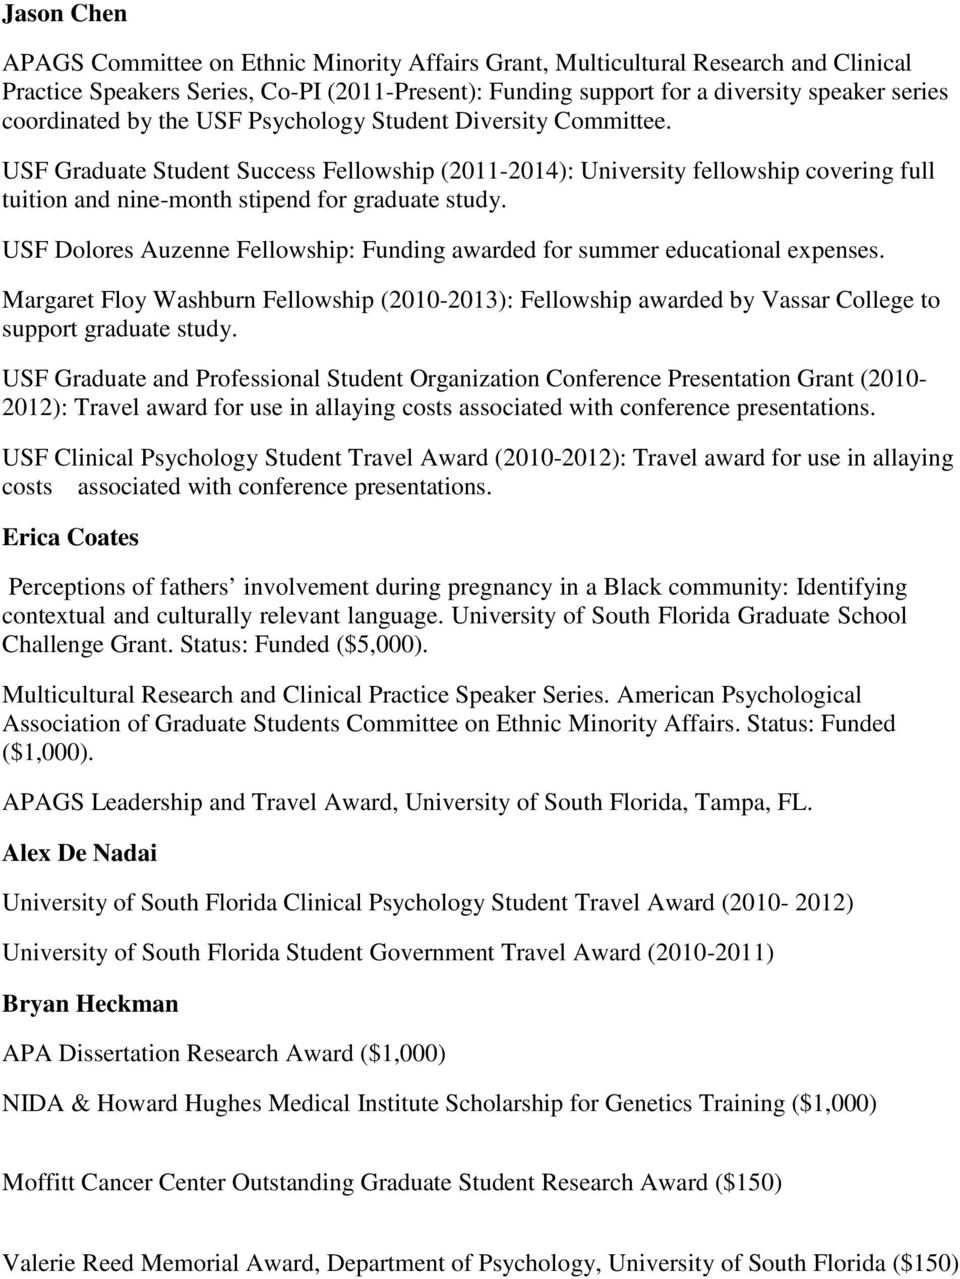 clinical psychology dissertation funding